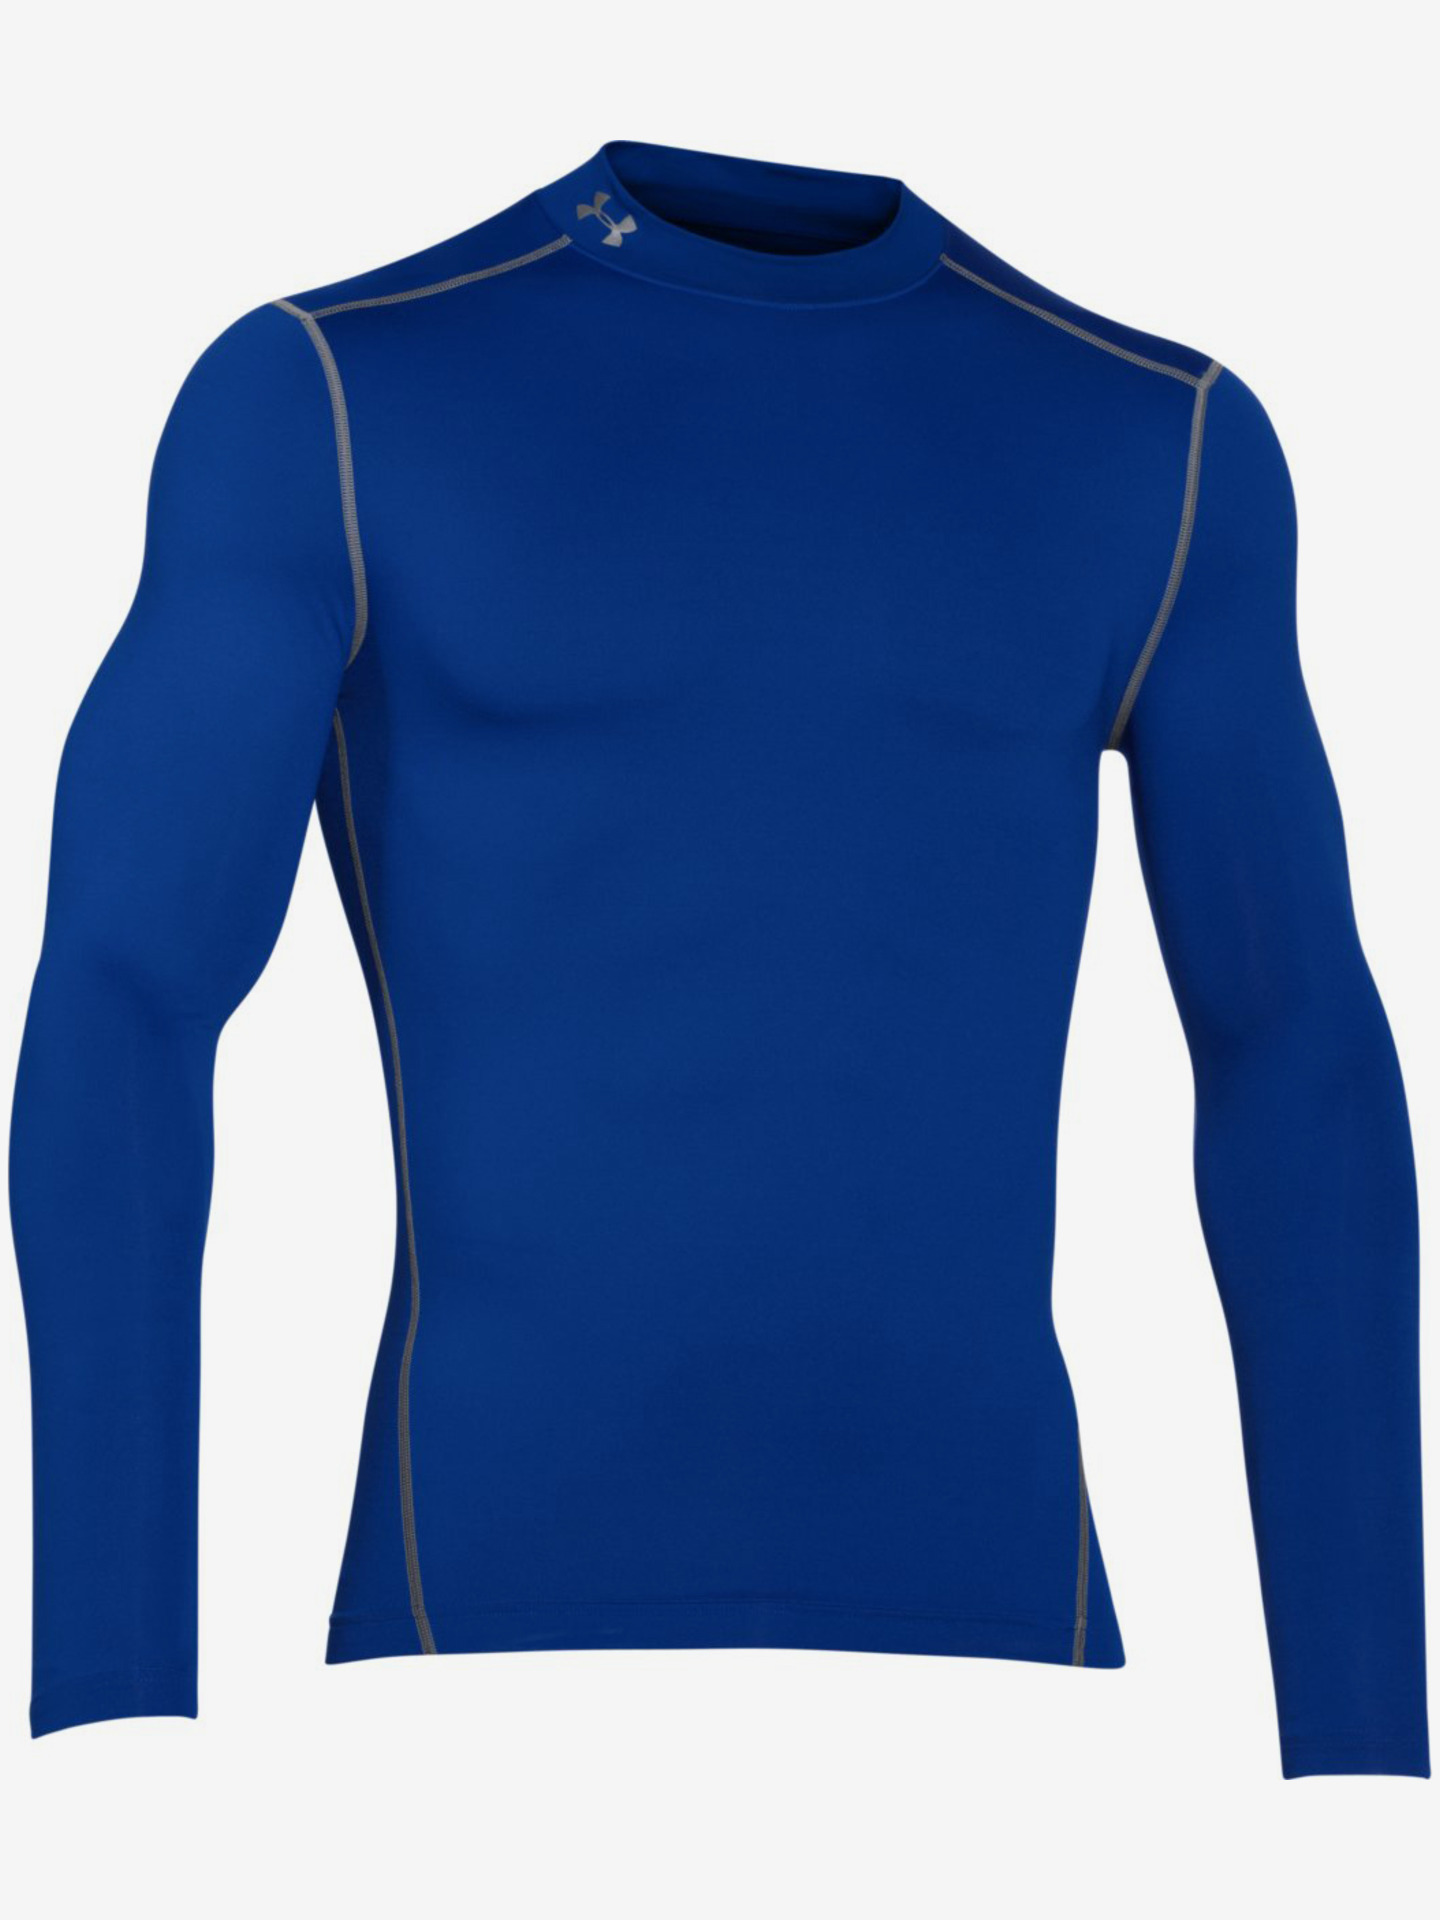 Pánské trička modrá ColdGear® Armour Compression Triko Under Armour (4)